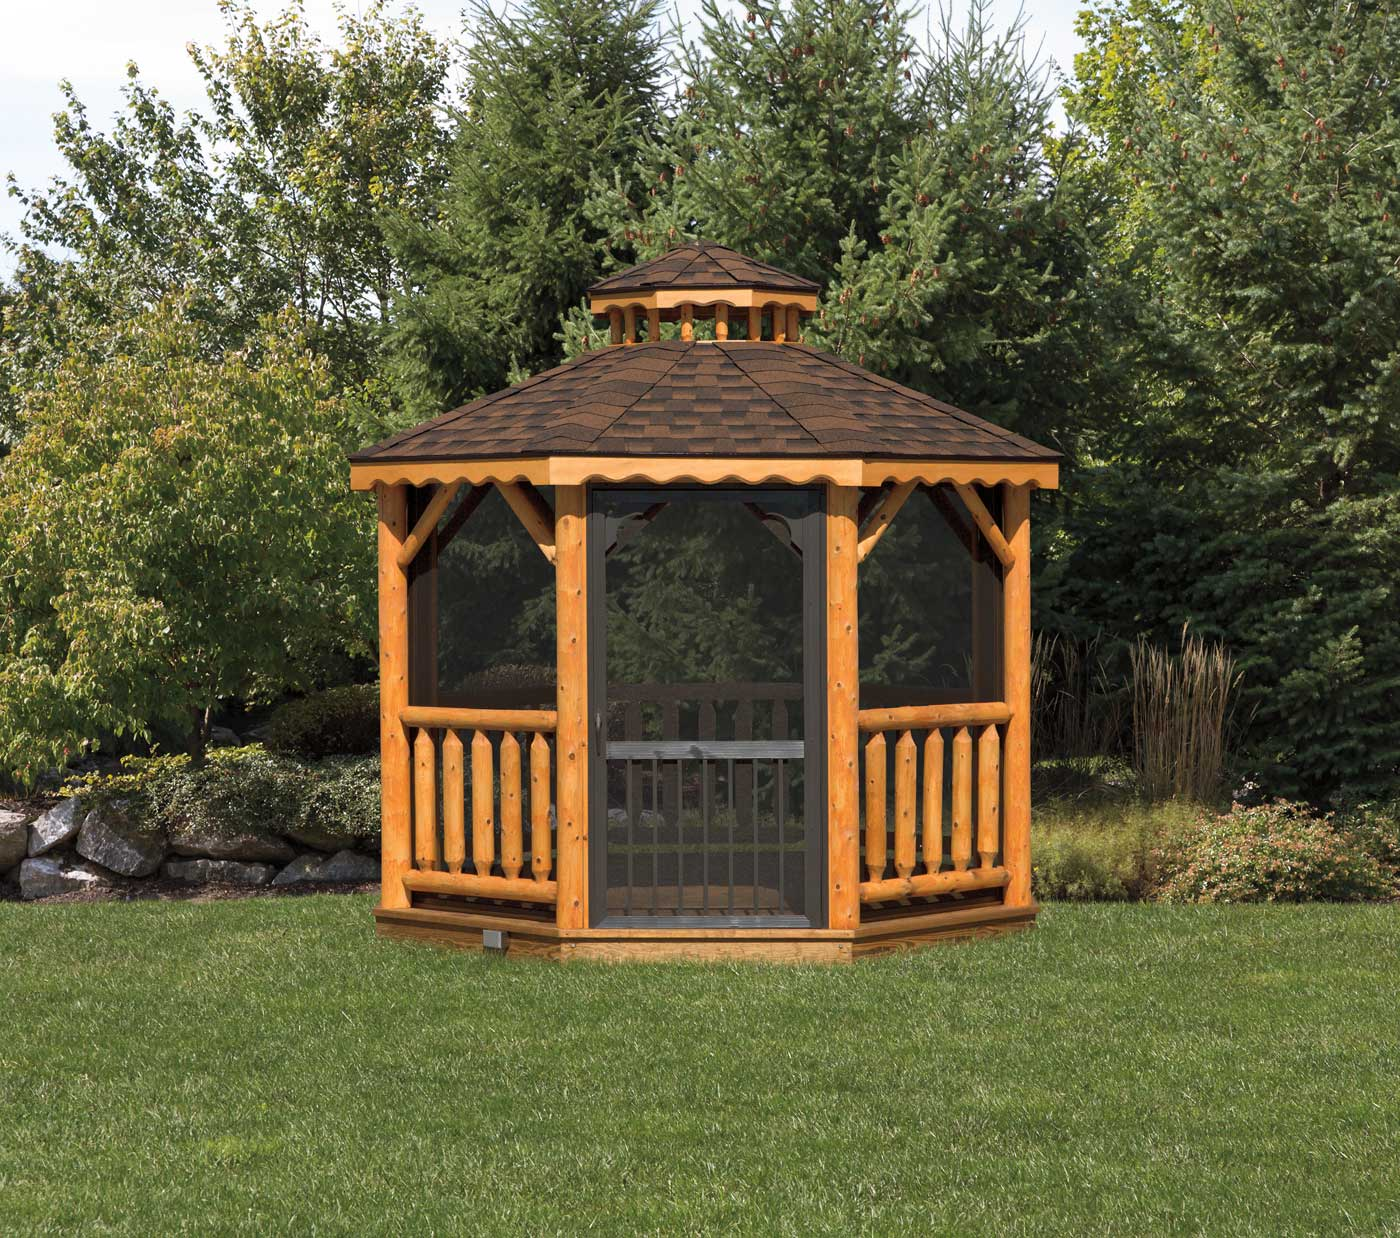 10 Log Octagon Gazebo 171 Amish Sheds From Bob Foote